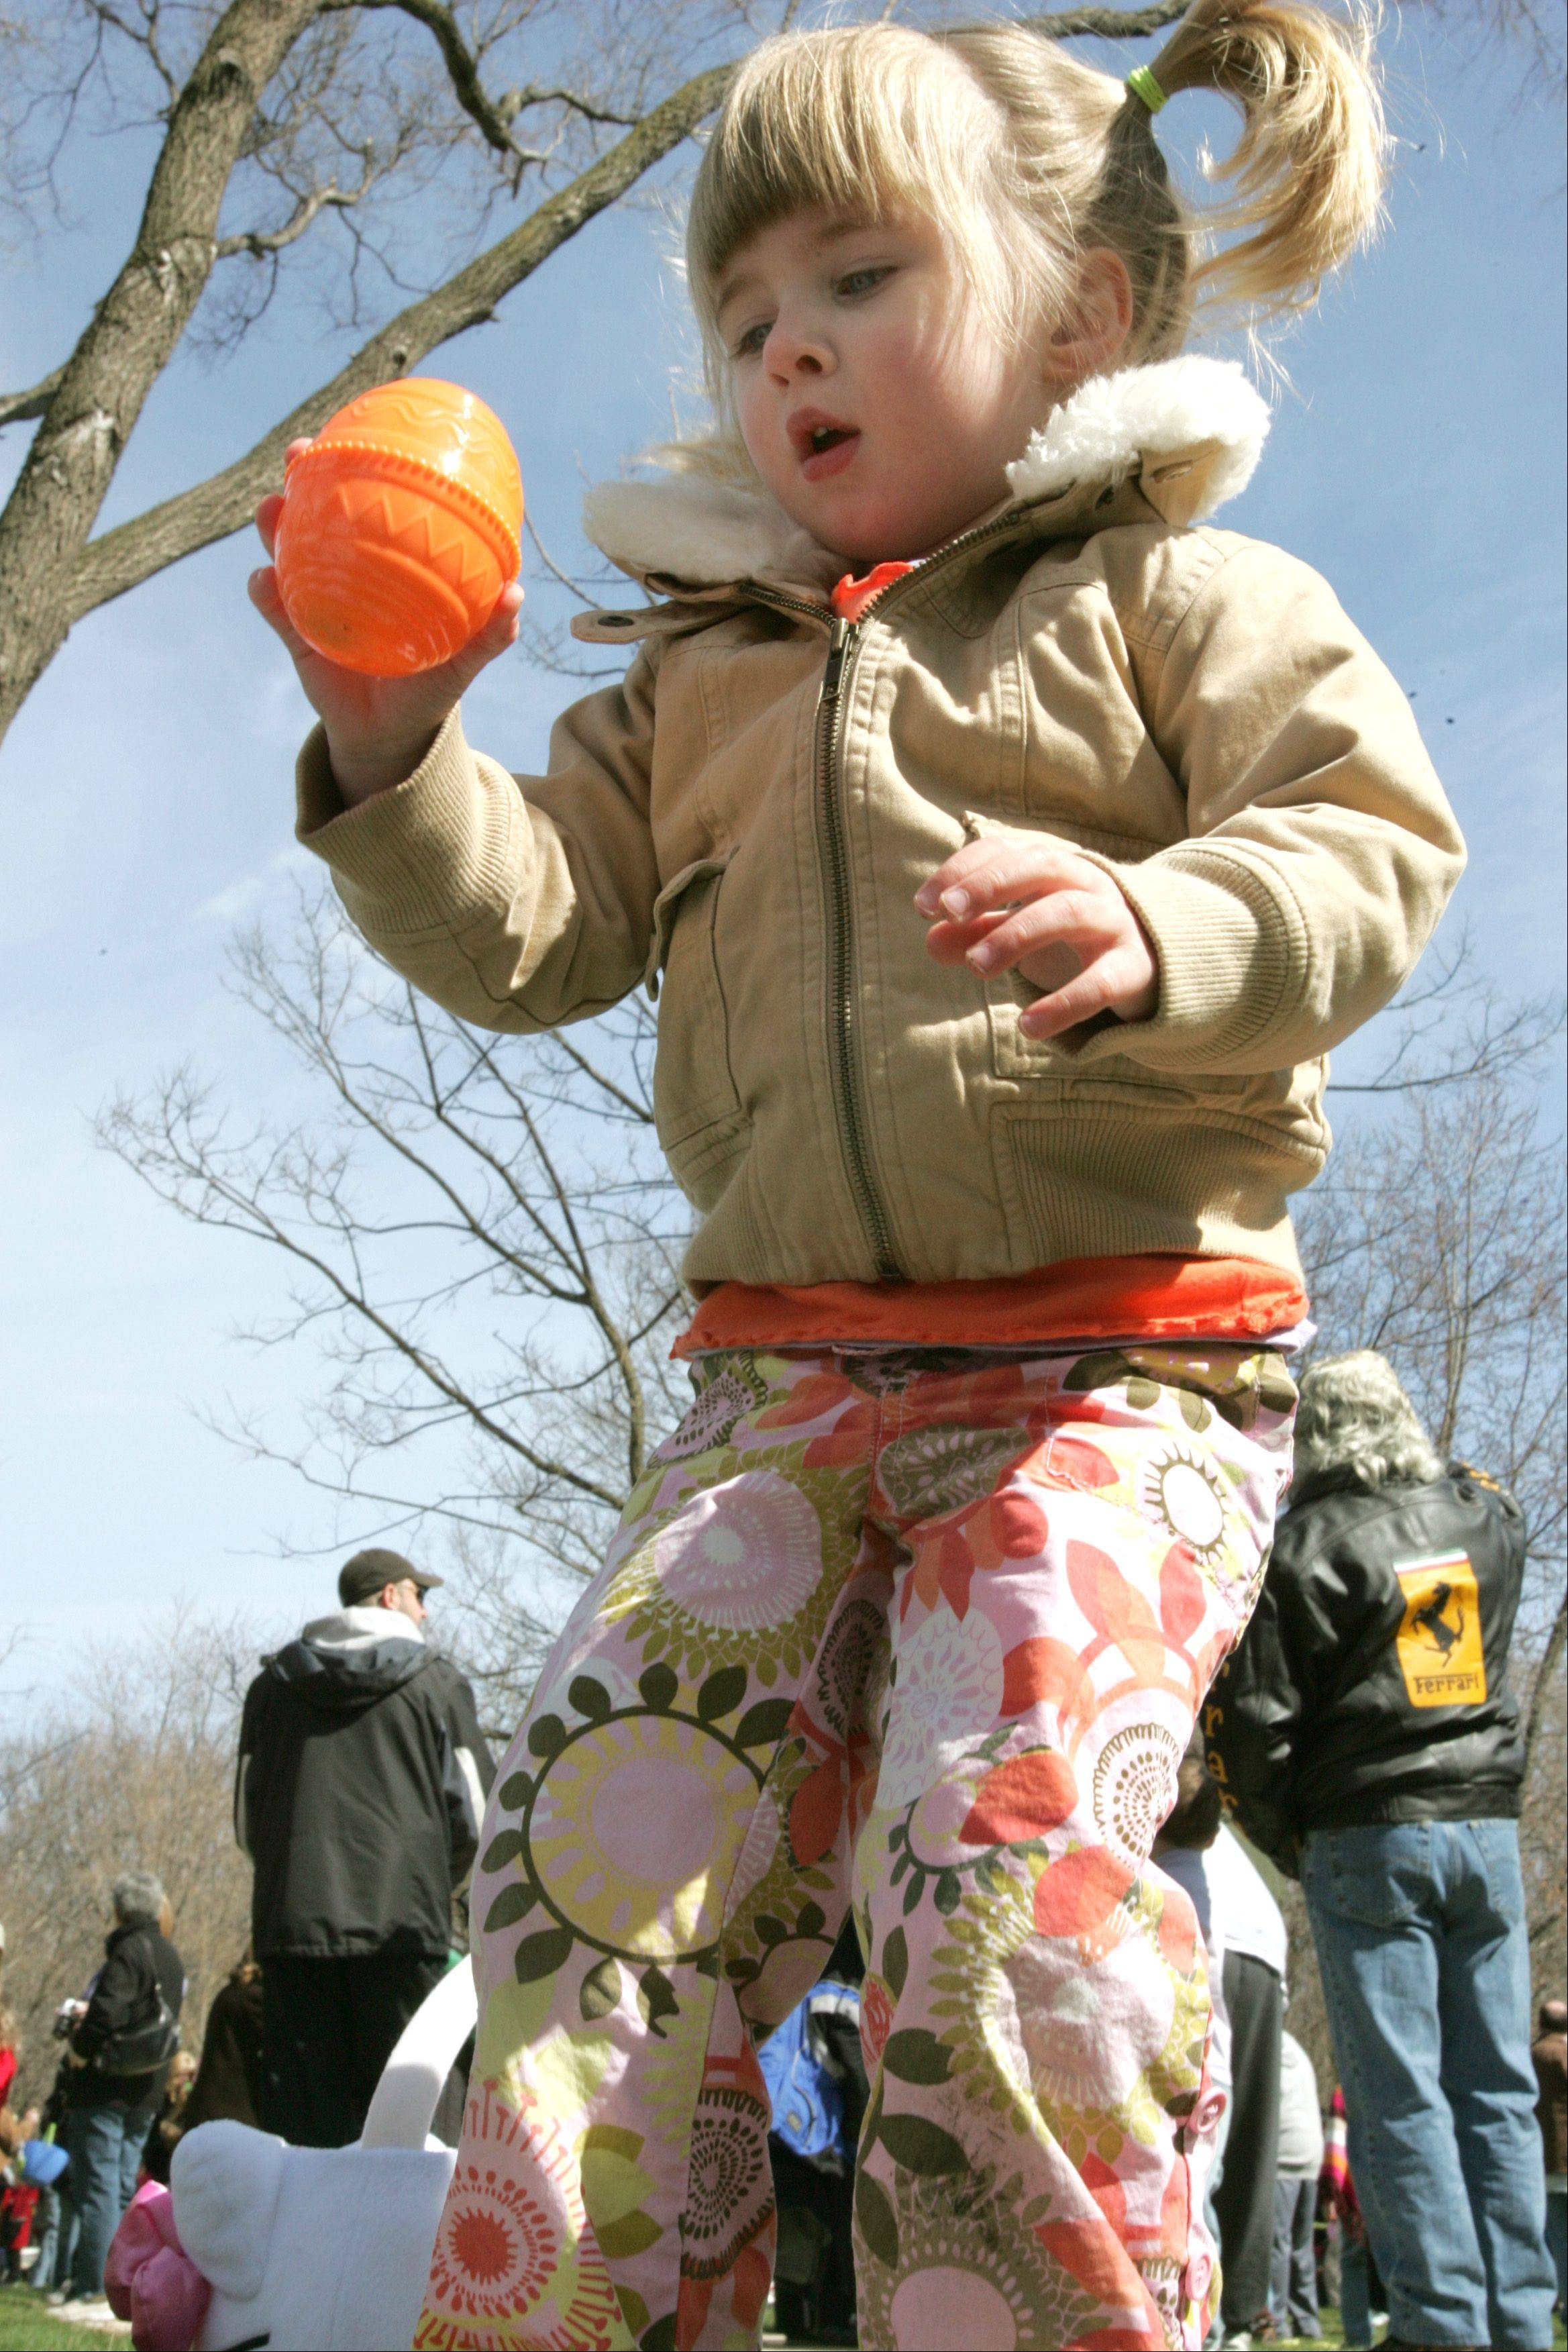 Kids of all ages -- and even some adults -- soon will have a chance to search for some colorful eggs in towns throughout DuPage County.